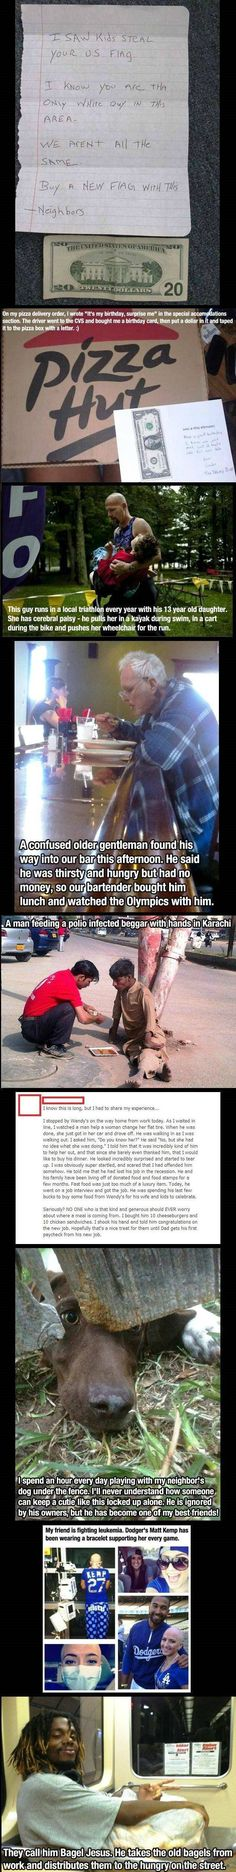 Restore Your Faith In Humanity-made me tear up.